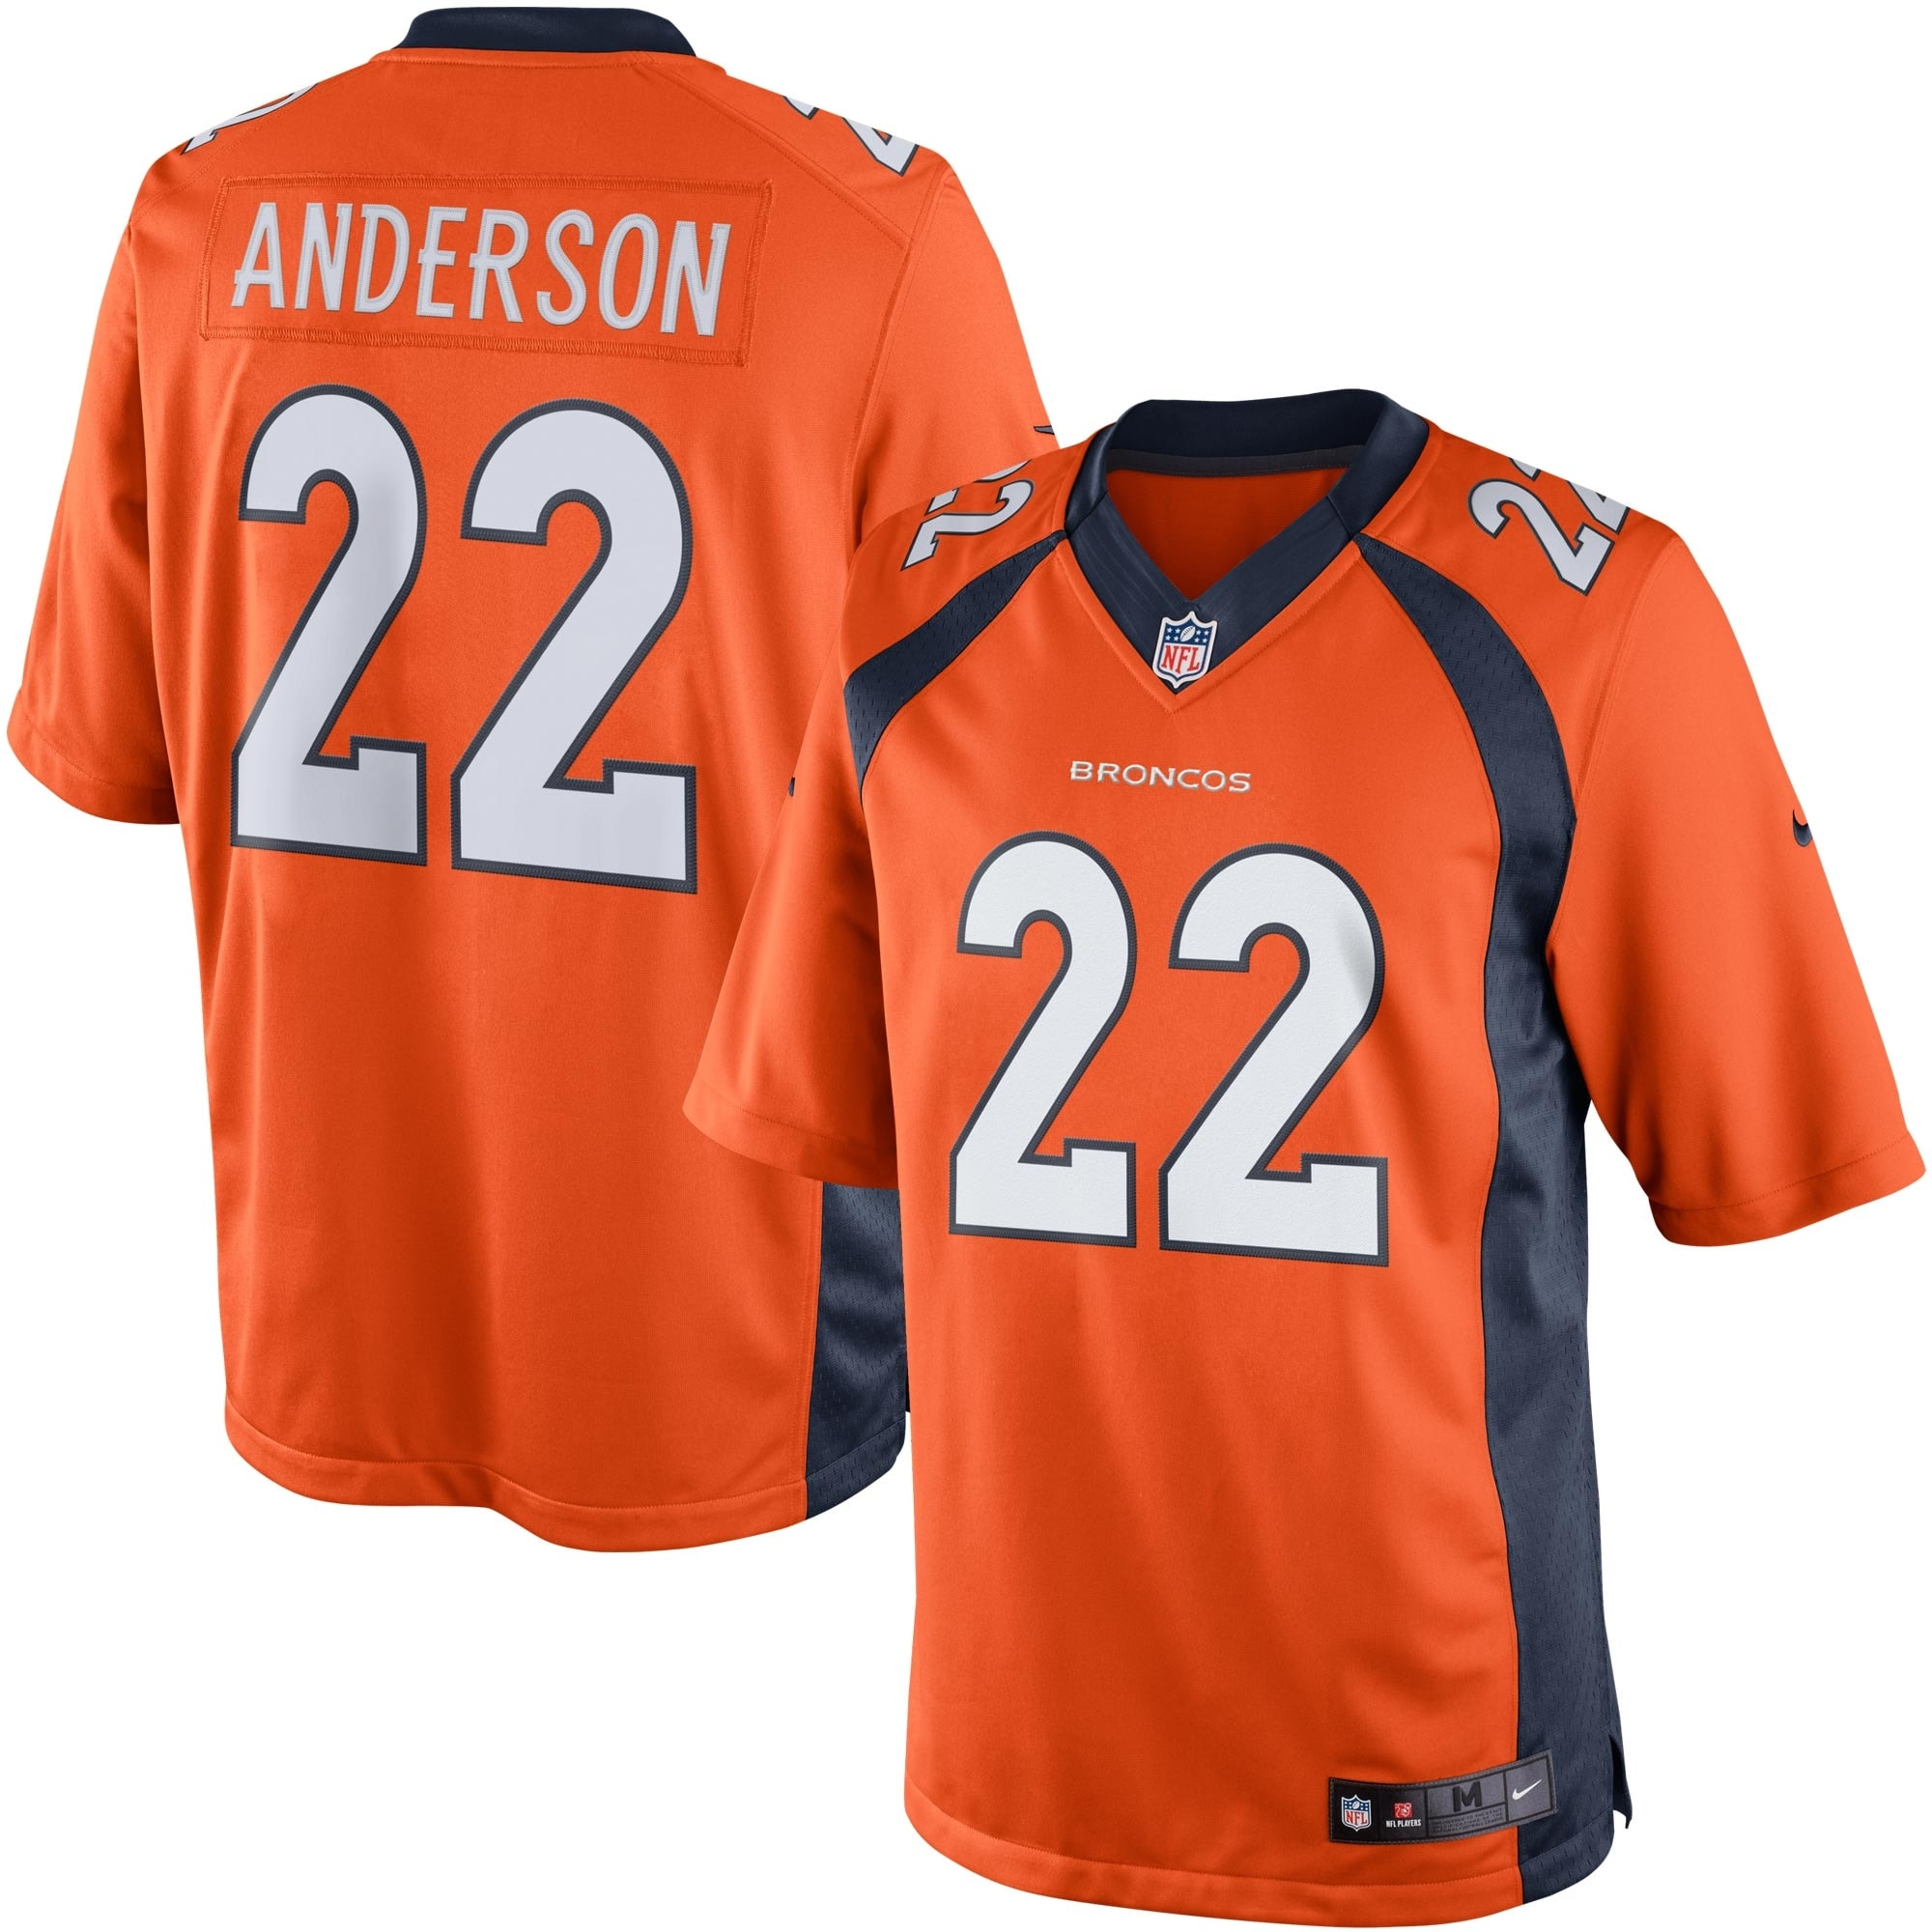 CJ Anderson Denver Broncos Nike Limited Jersey - Orange